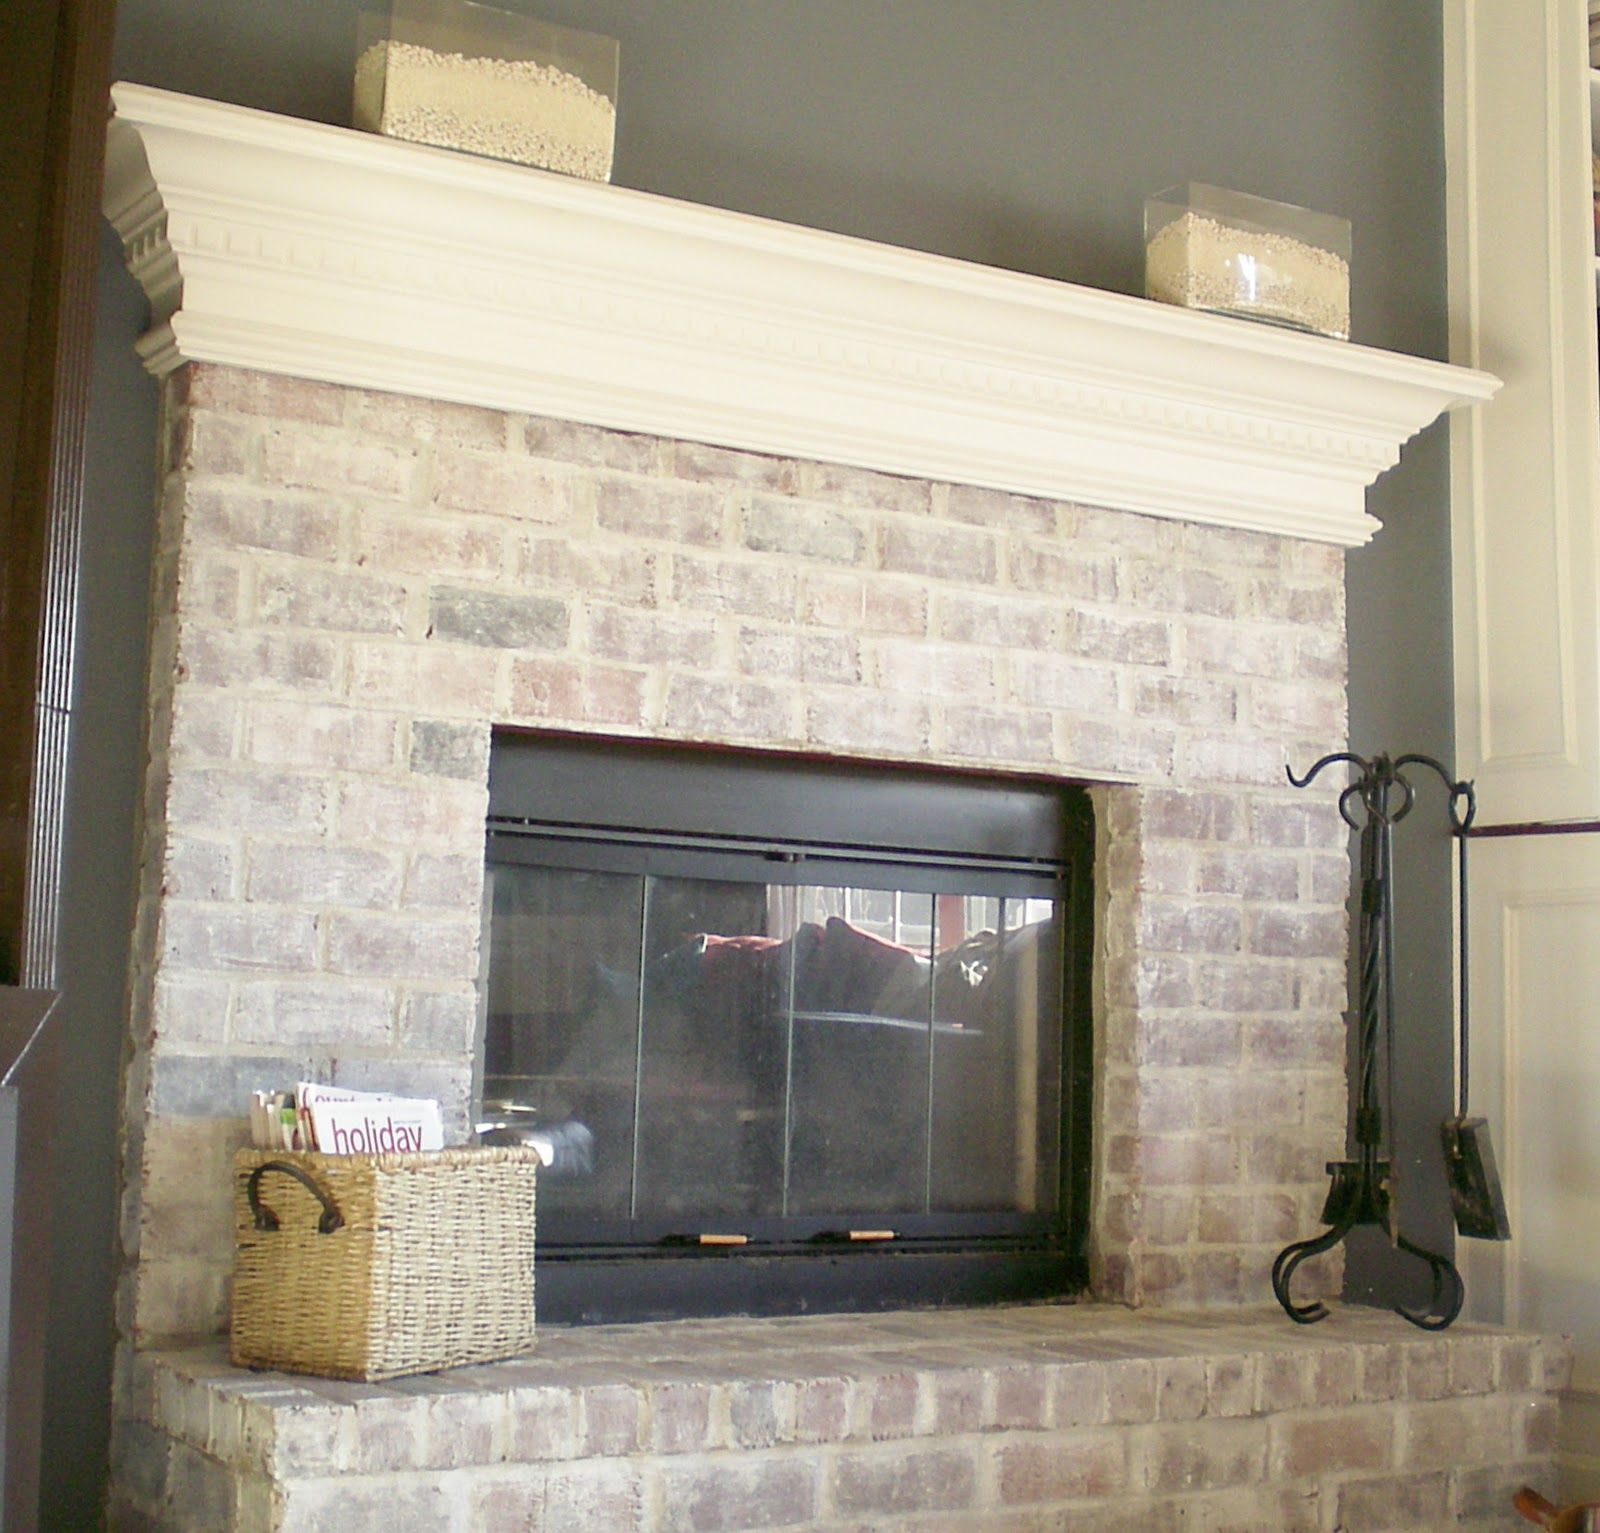 How To White Wash A Brick Fireplace Much Better Than Painting I So Want Do This Our Ugly